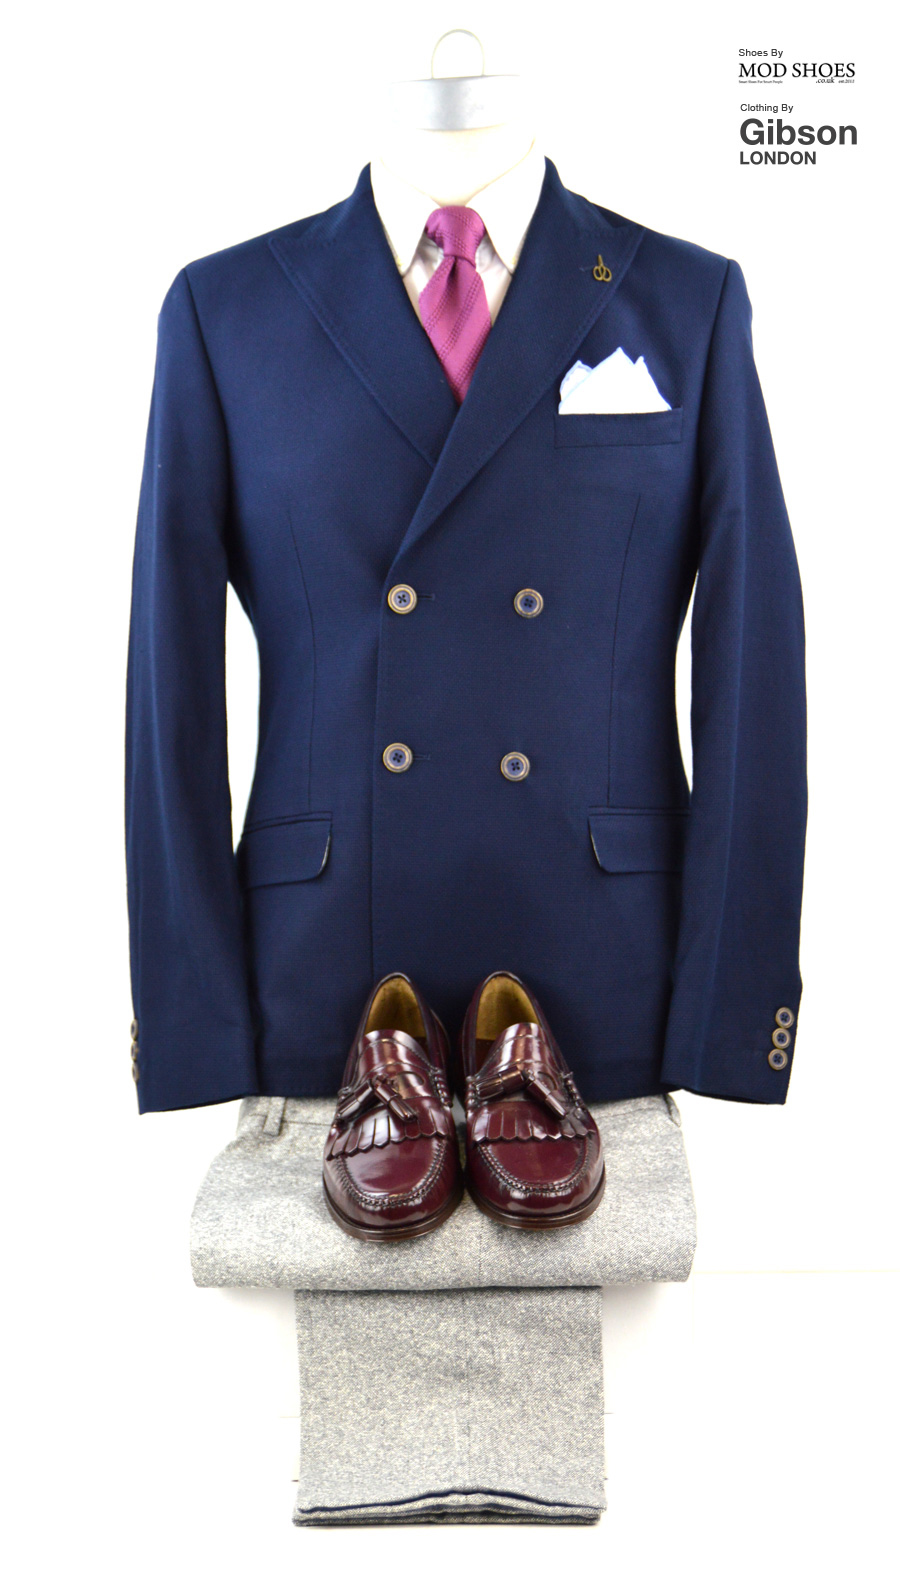 modshoes-dukes-oxblood-tassel-loafer-with-blue-jack-from-gibson-clothing